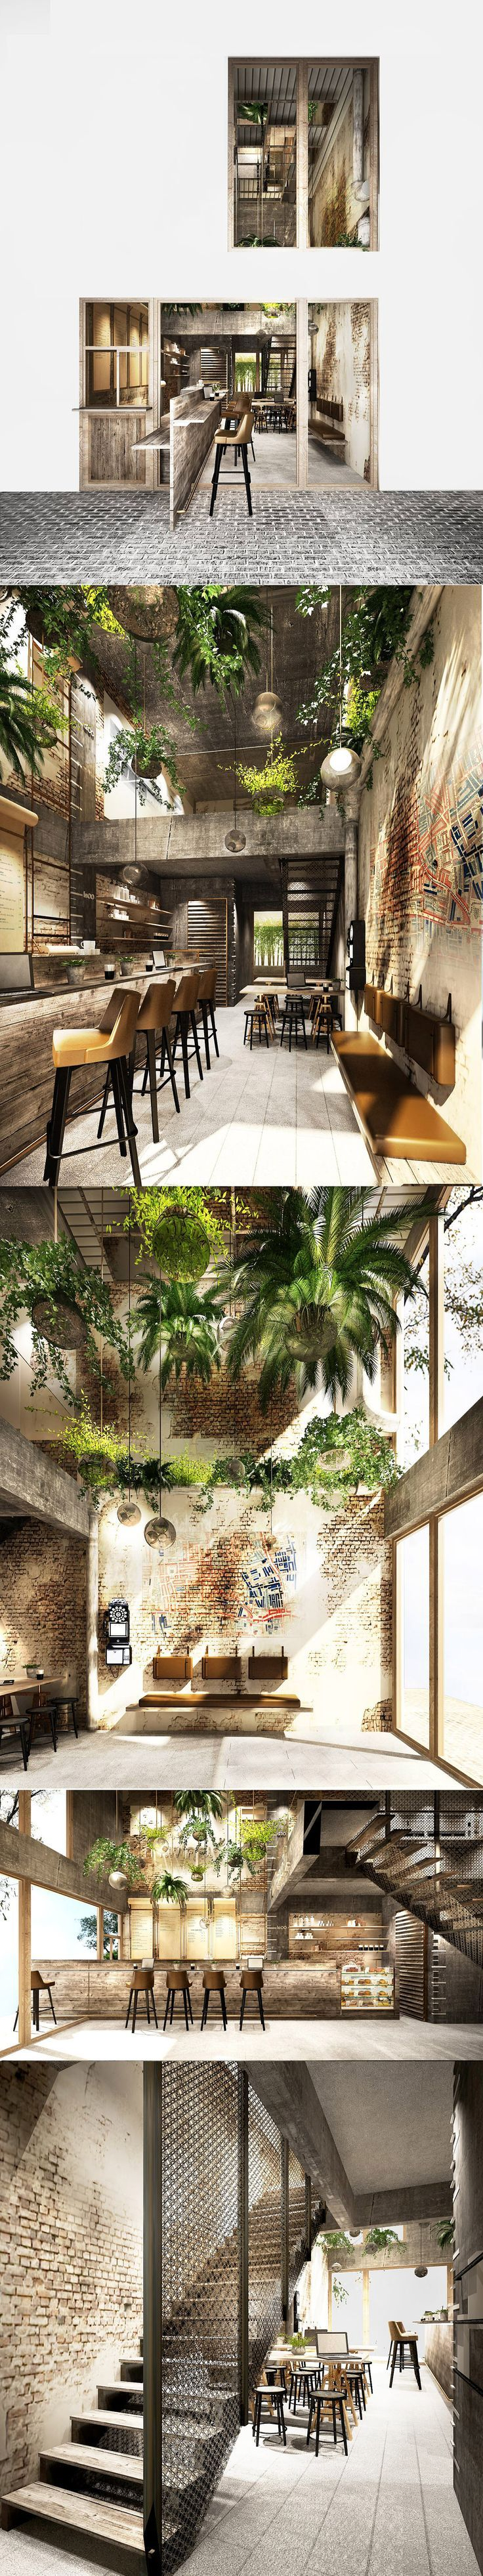 Pin by zoe on house ideas and furniture pinterest for Outdoor furniture thailand bangkok